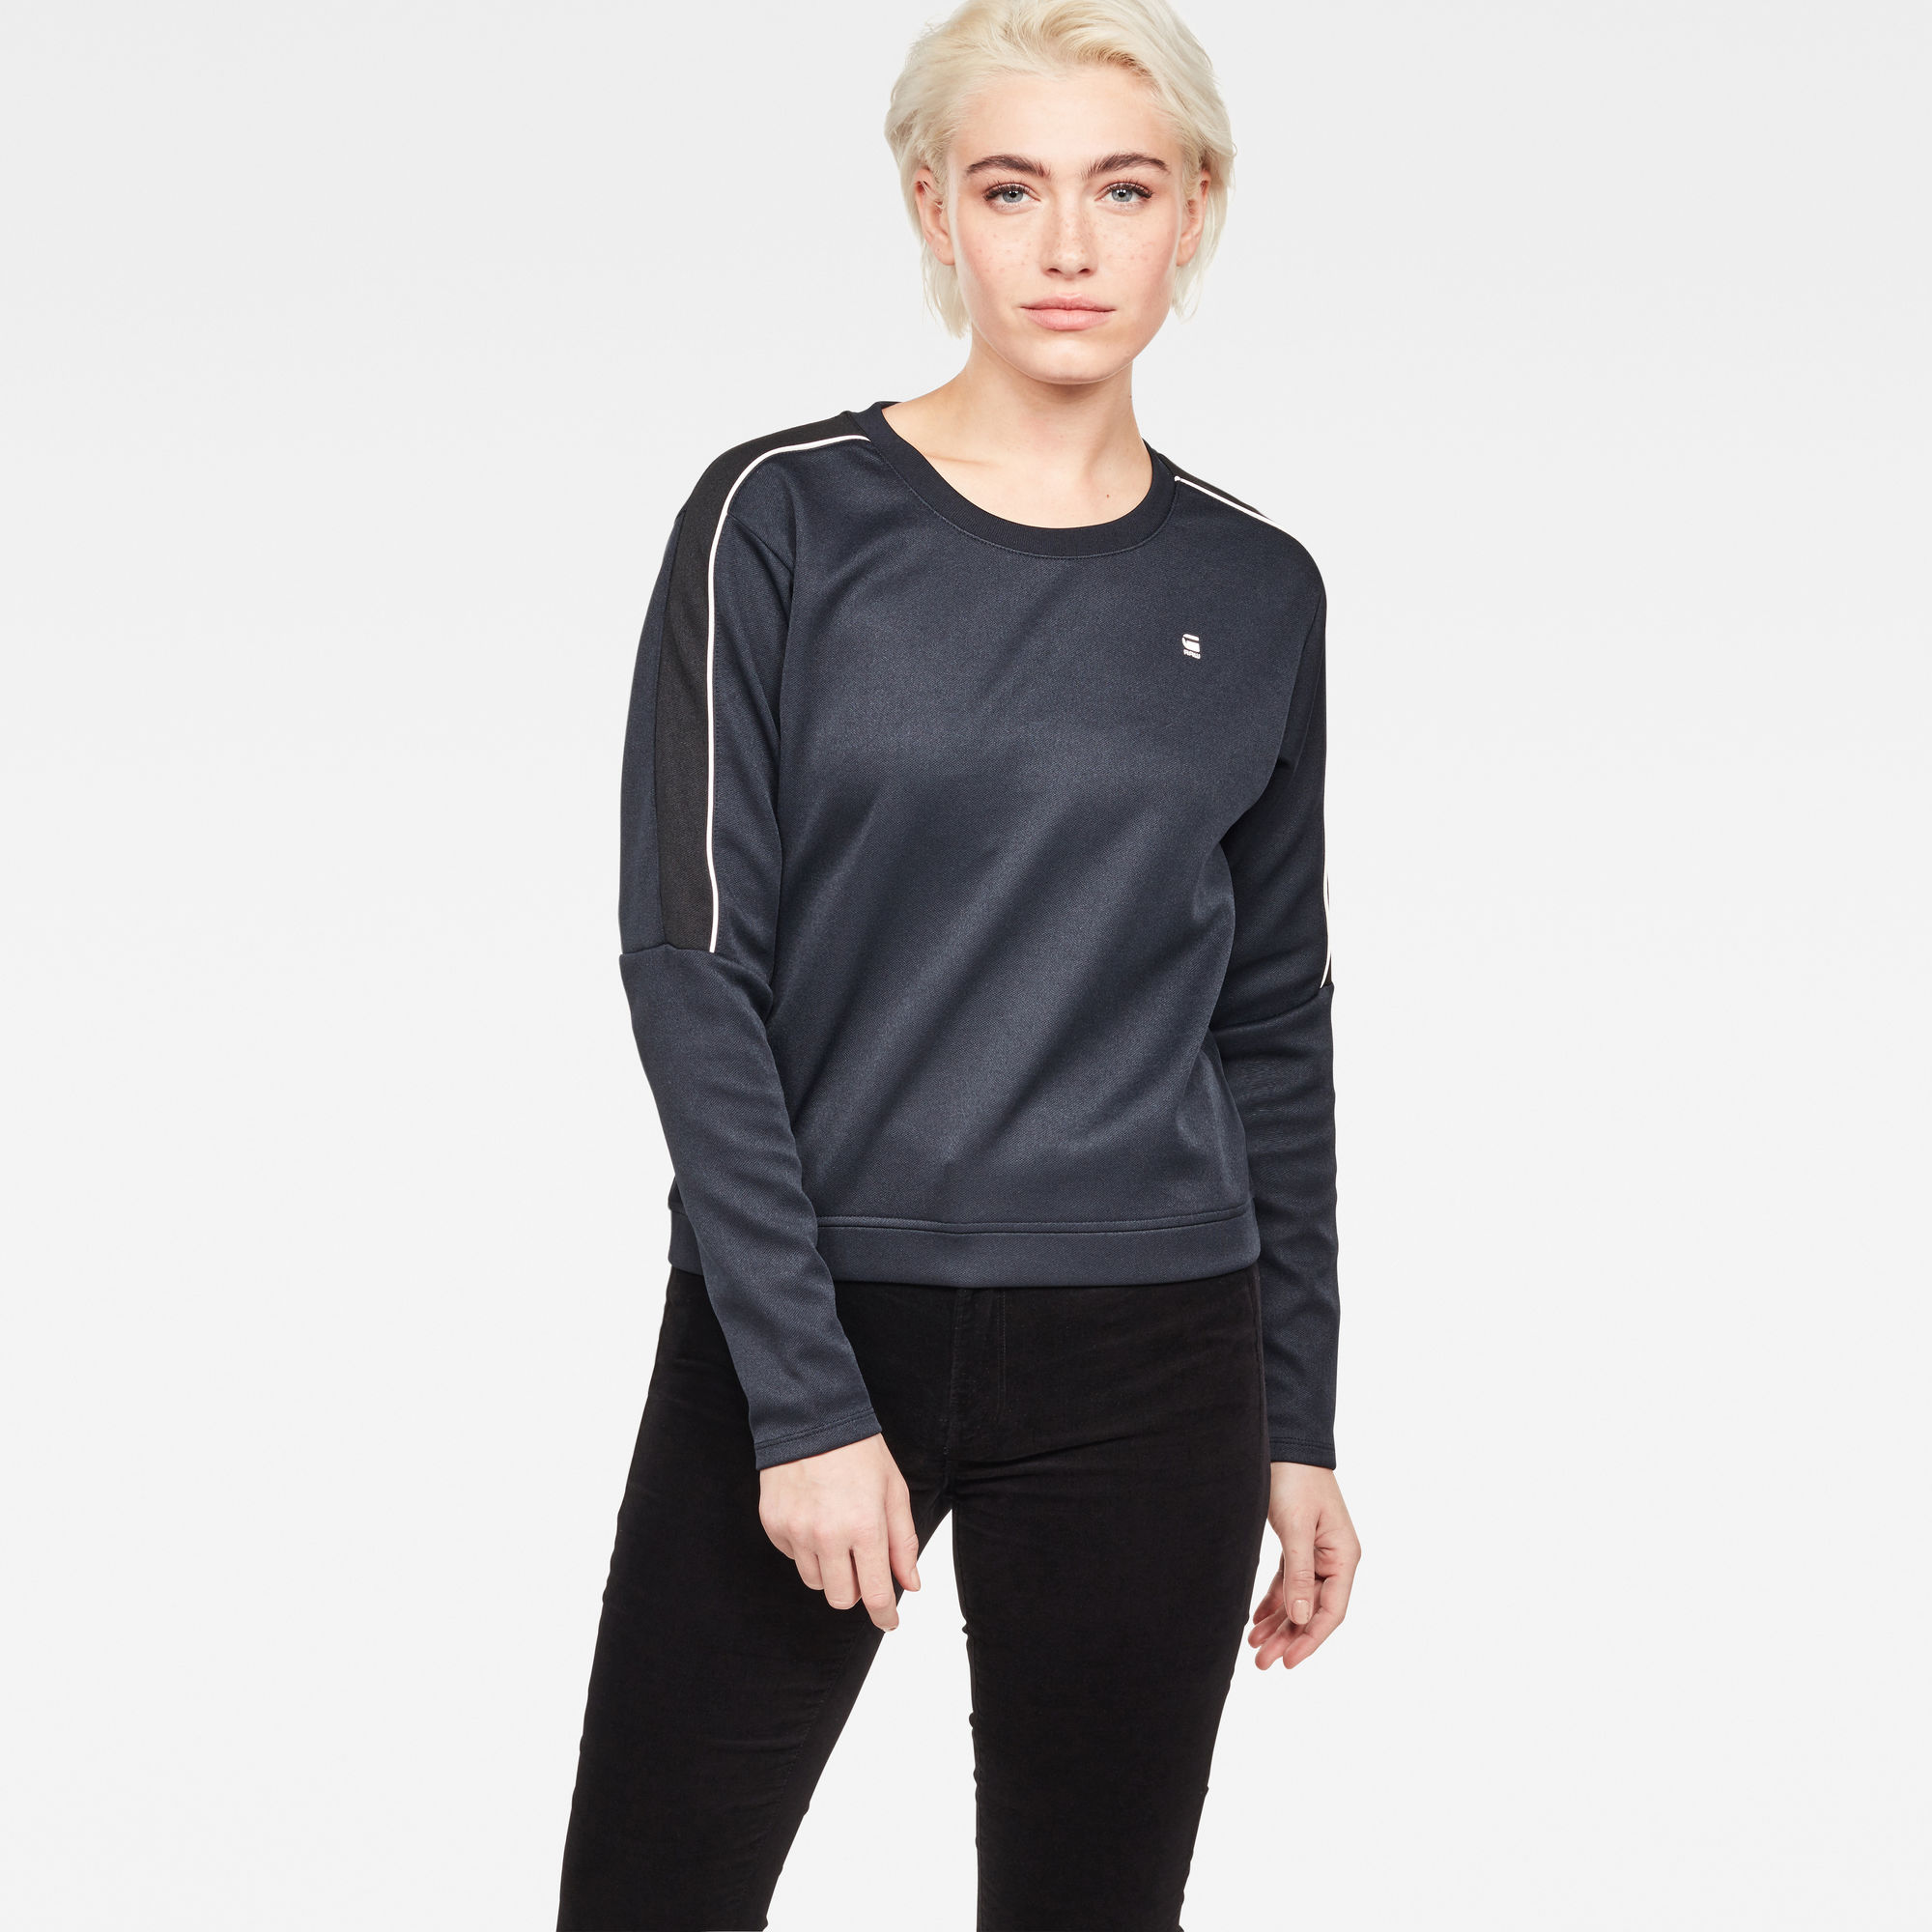 Image of G Star Raw Nostelle Stripe Cropped Sweat